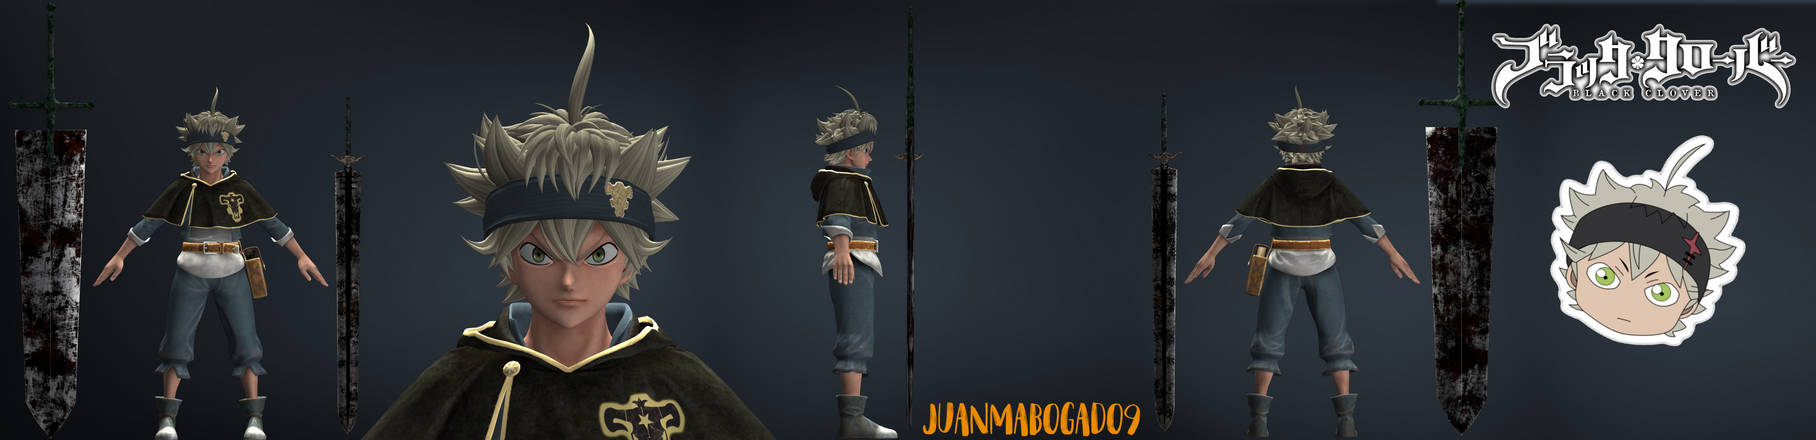 Jump Force Asta By Juanmabogado9 On Deviantart